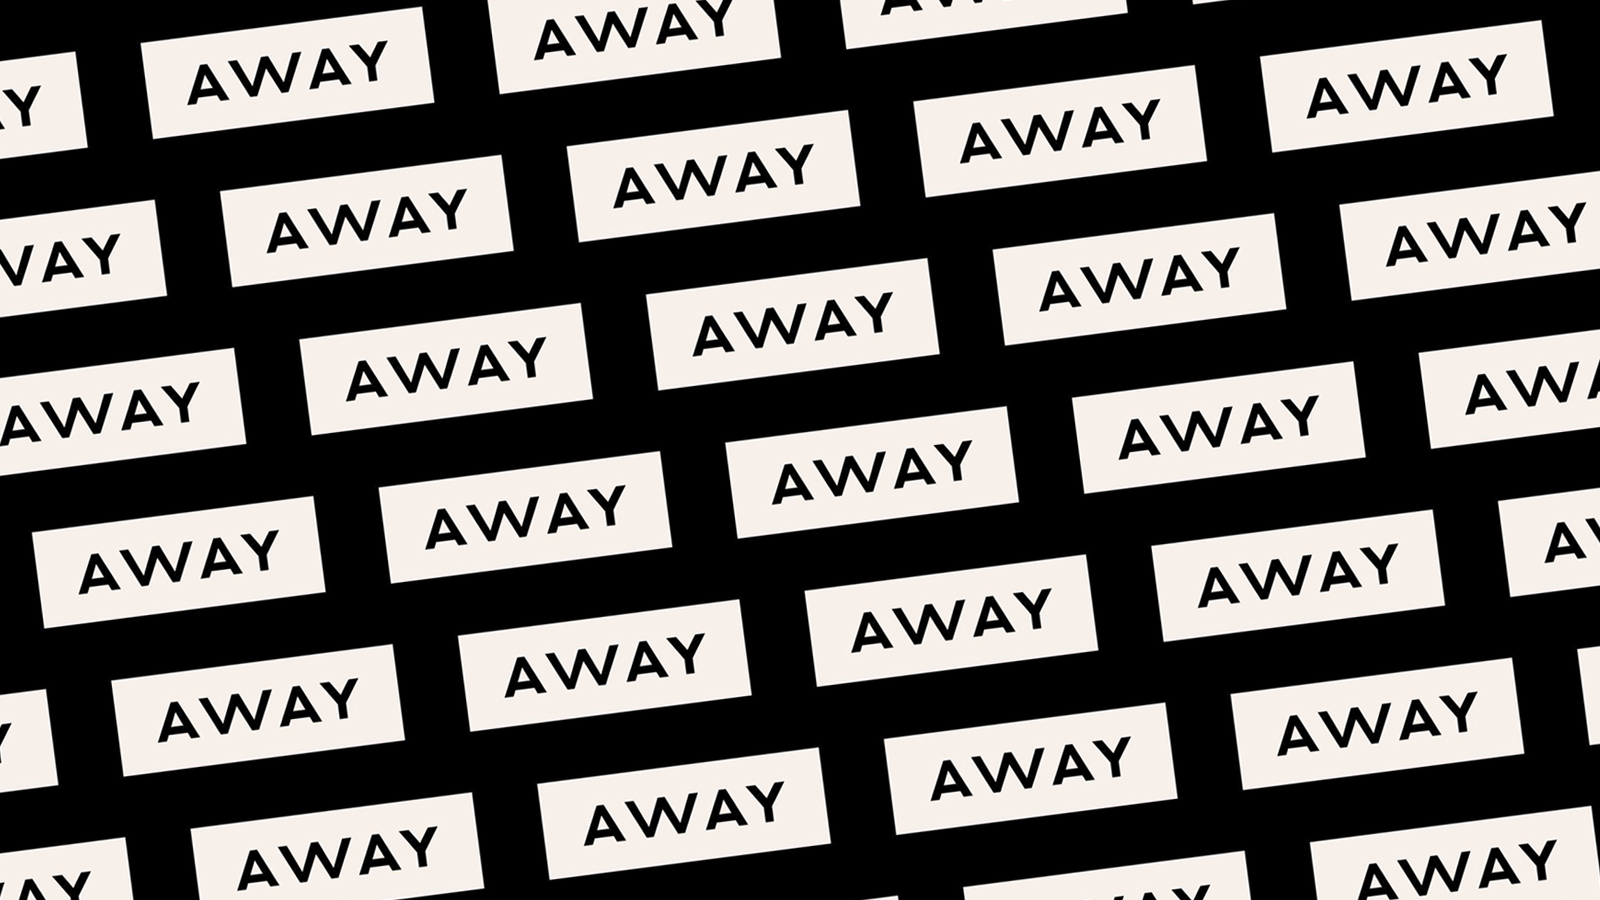 An analysis of the workplace toxicity at travel brand Away that led to an executive resignation